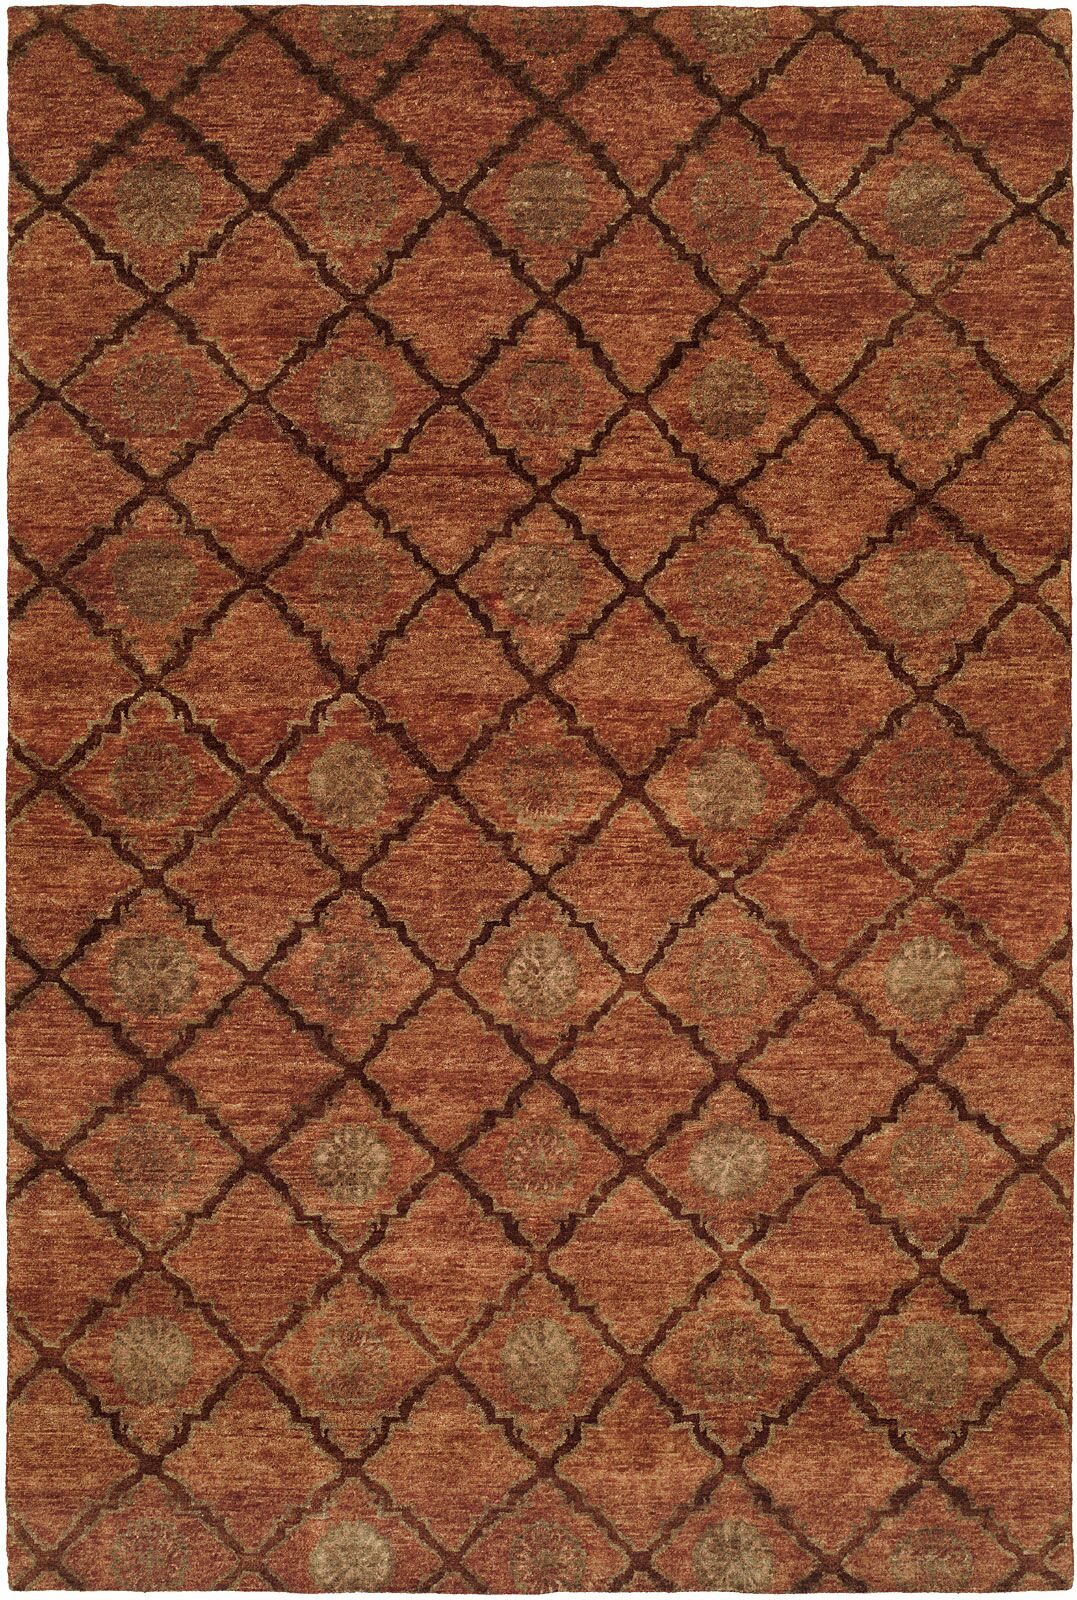 Chabang Hand-Knotted Rust Area Rug Rug Size: Square 10'